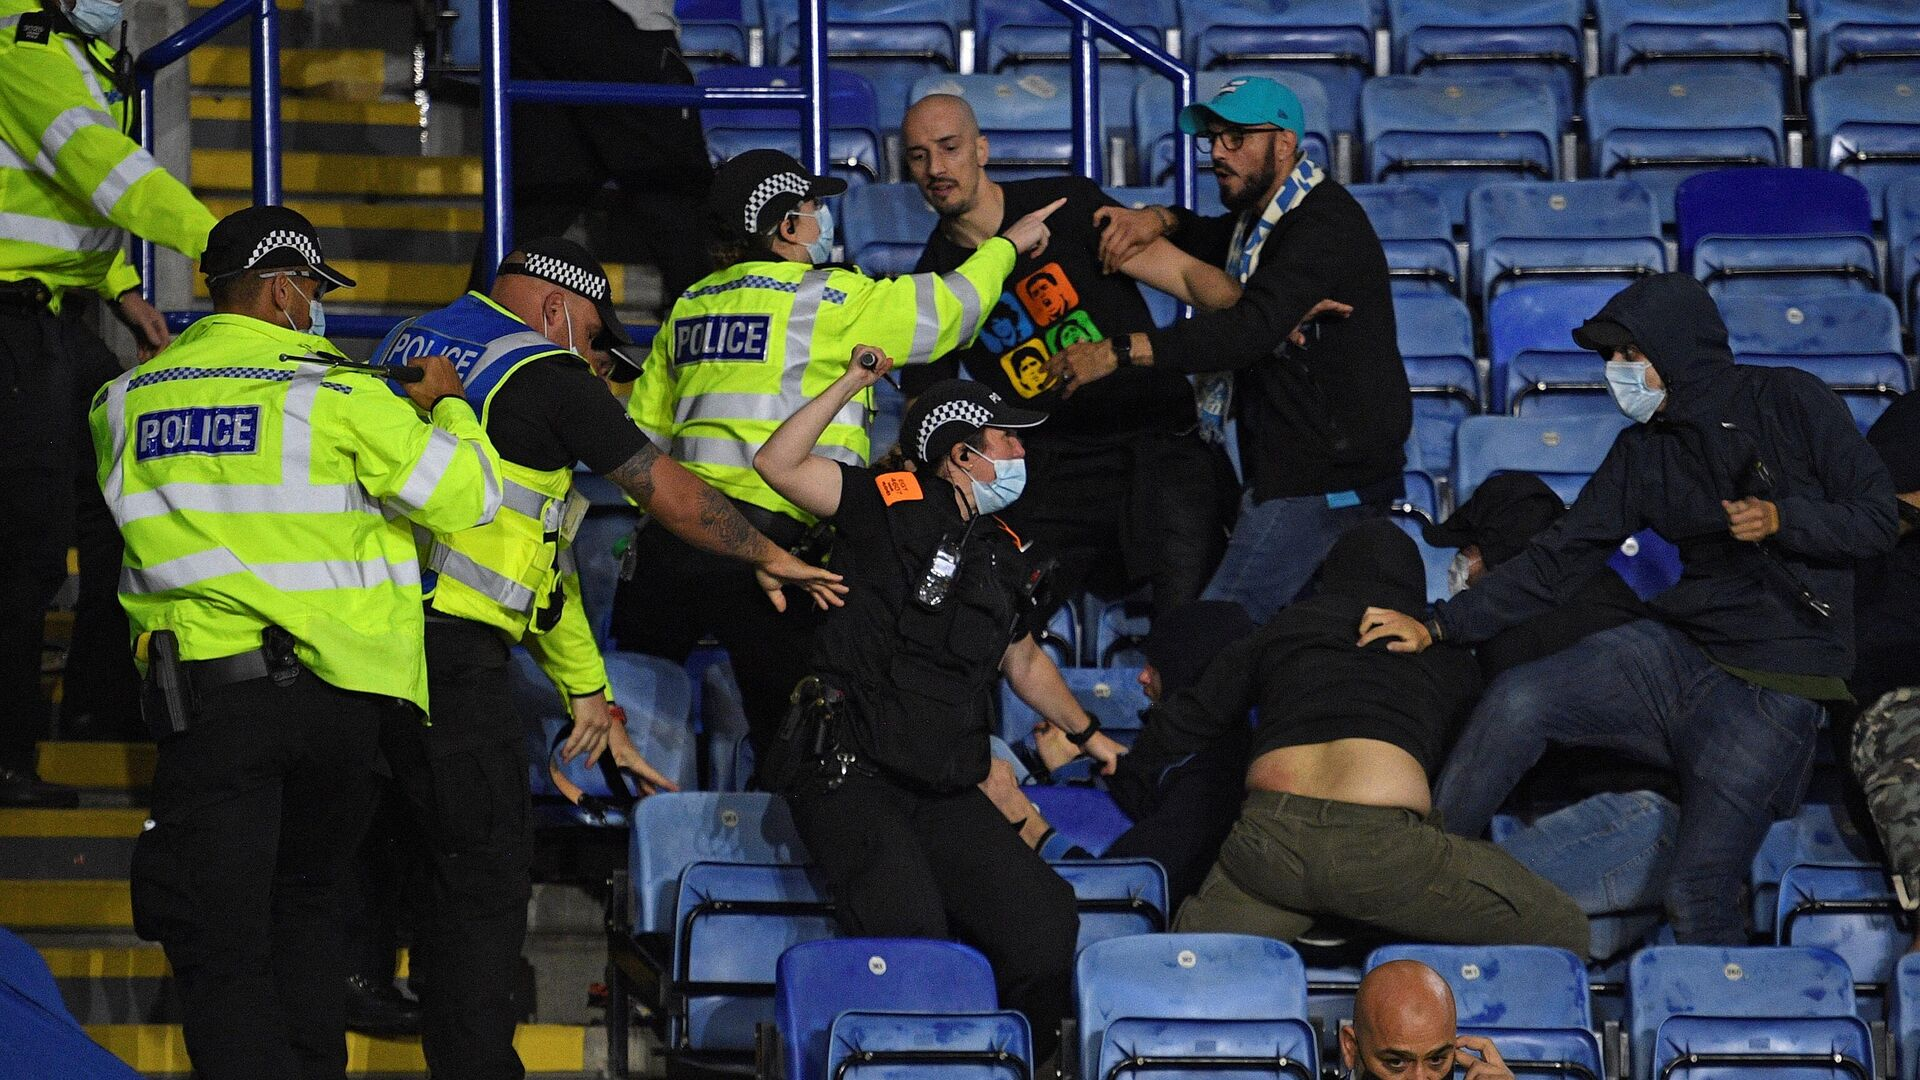 Police officers use batons as they hold back Napoli fans attempting to clash with Leicester fans after the final whistle during the UEFA Europa League Group C football match between Leicester City and Napoli at the King Power Stadium in Leicester, central England on September 16, 2021. - The match ended 2-2. (Photo by Oli SCARFF / AFP) - РИА Новости, 1920, 17.09.2021